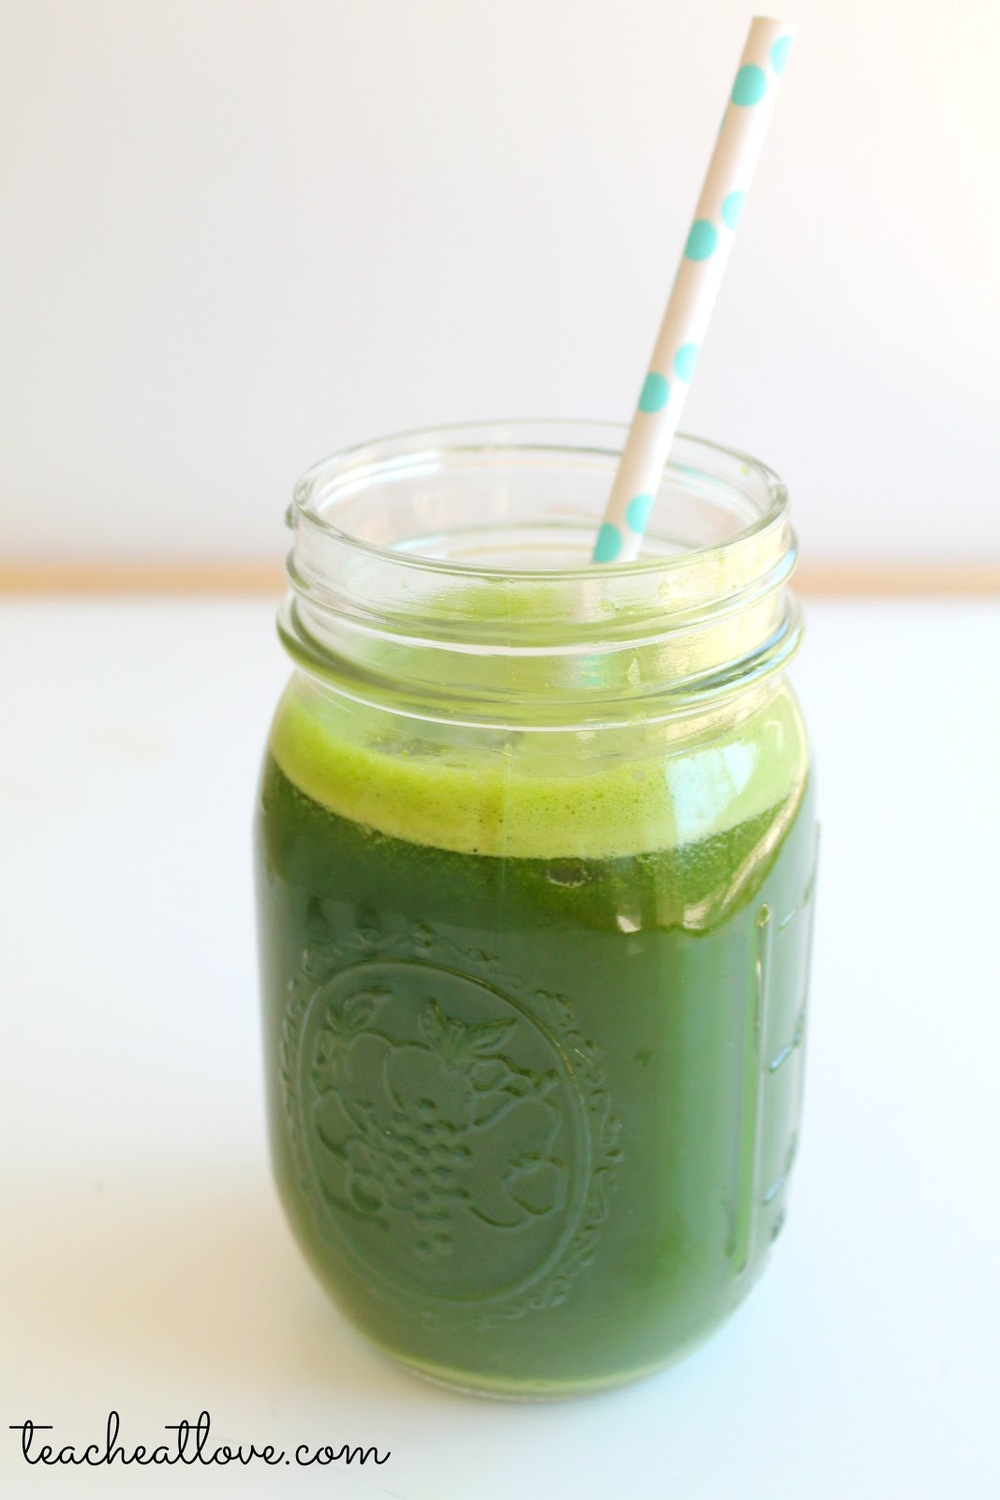 Spicy GREEN Manic Monday Anti-OX: 1/2 jalapeno 2 lemons 1 head living lettuce 1 green apple 1 avocado 1 bunch blueberries